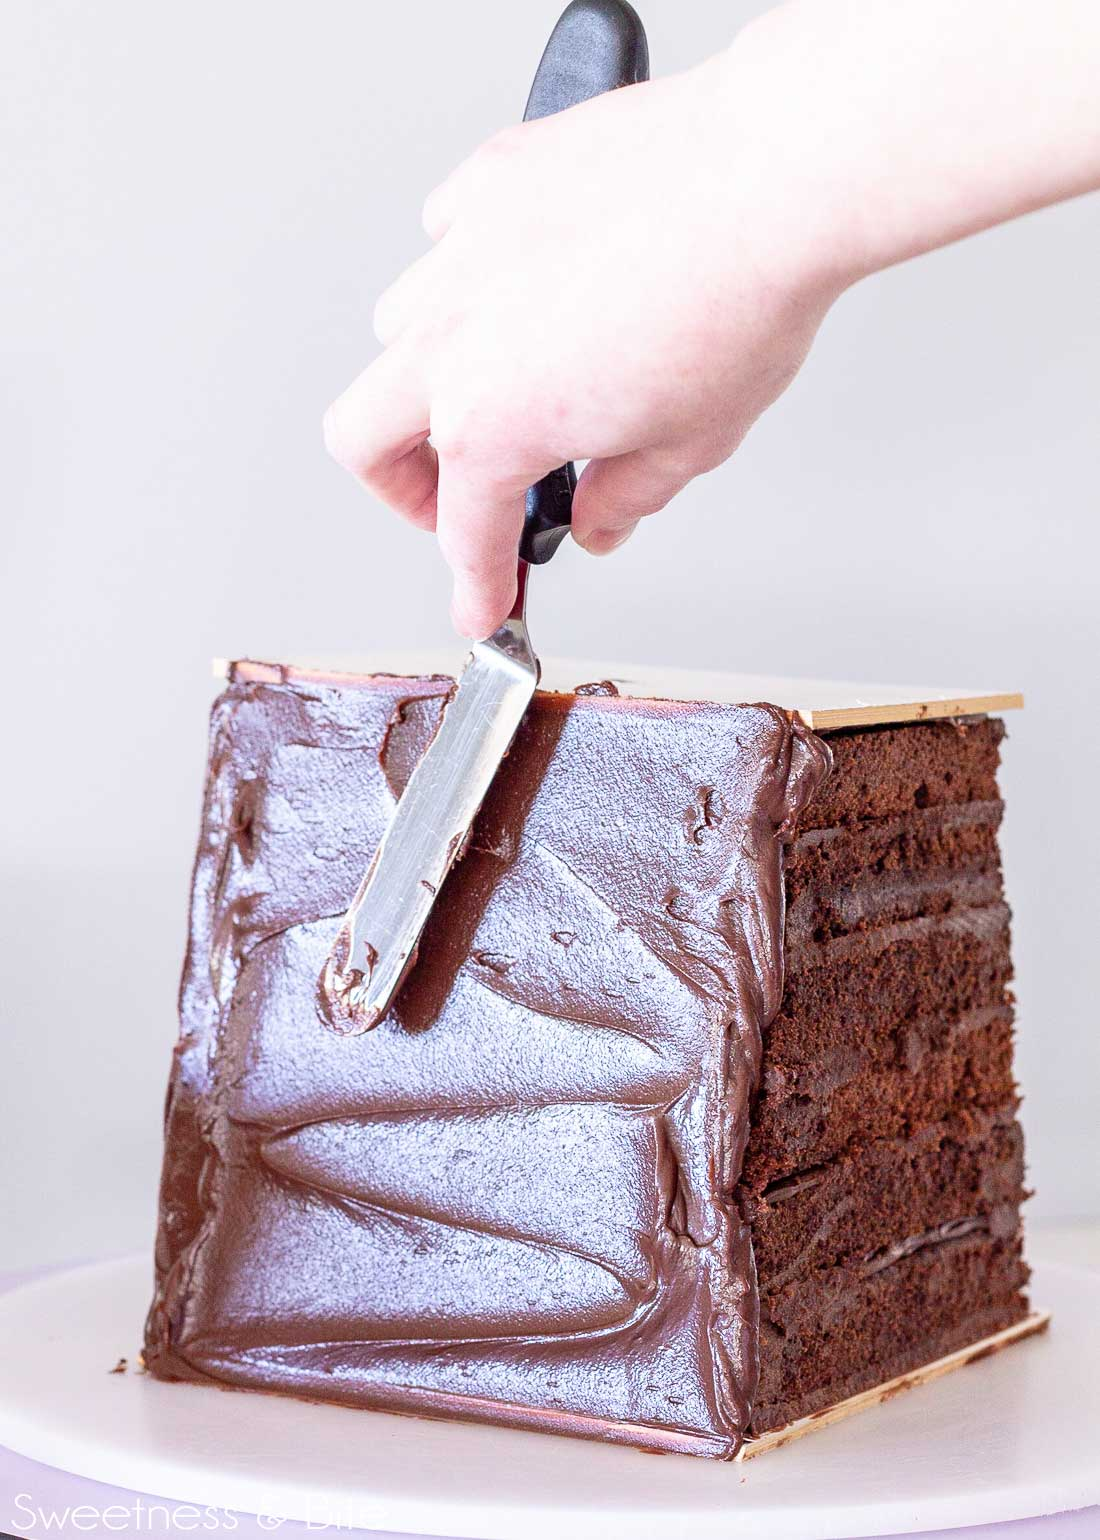 Tips for cake decorating with shaky hands - offset spatula